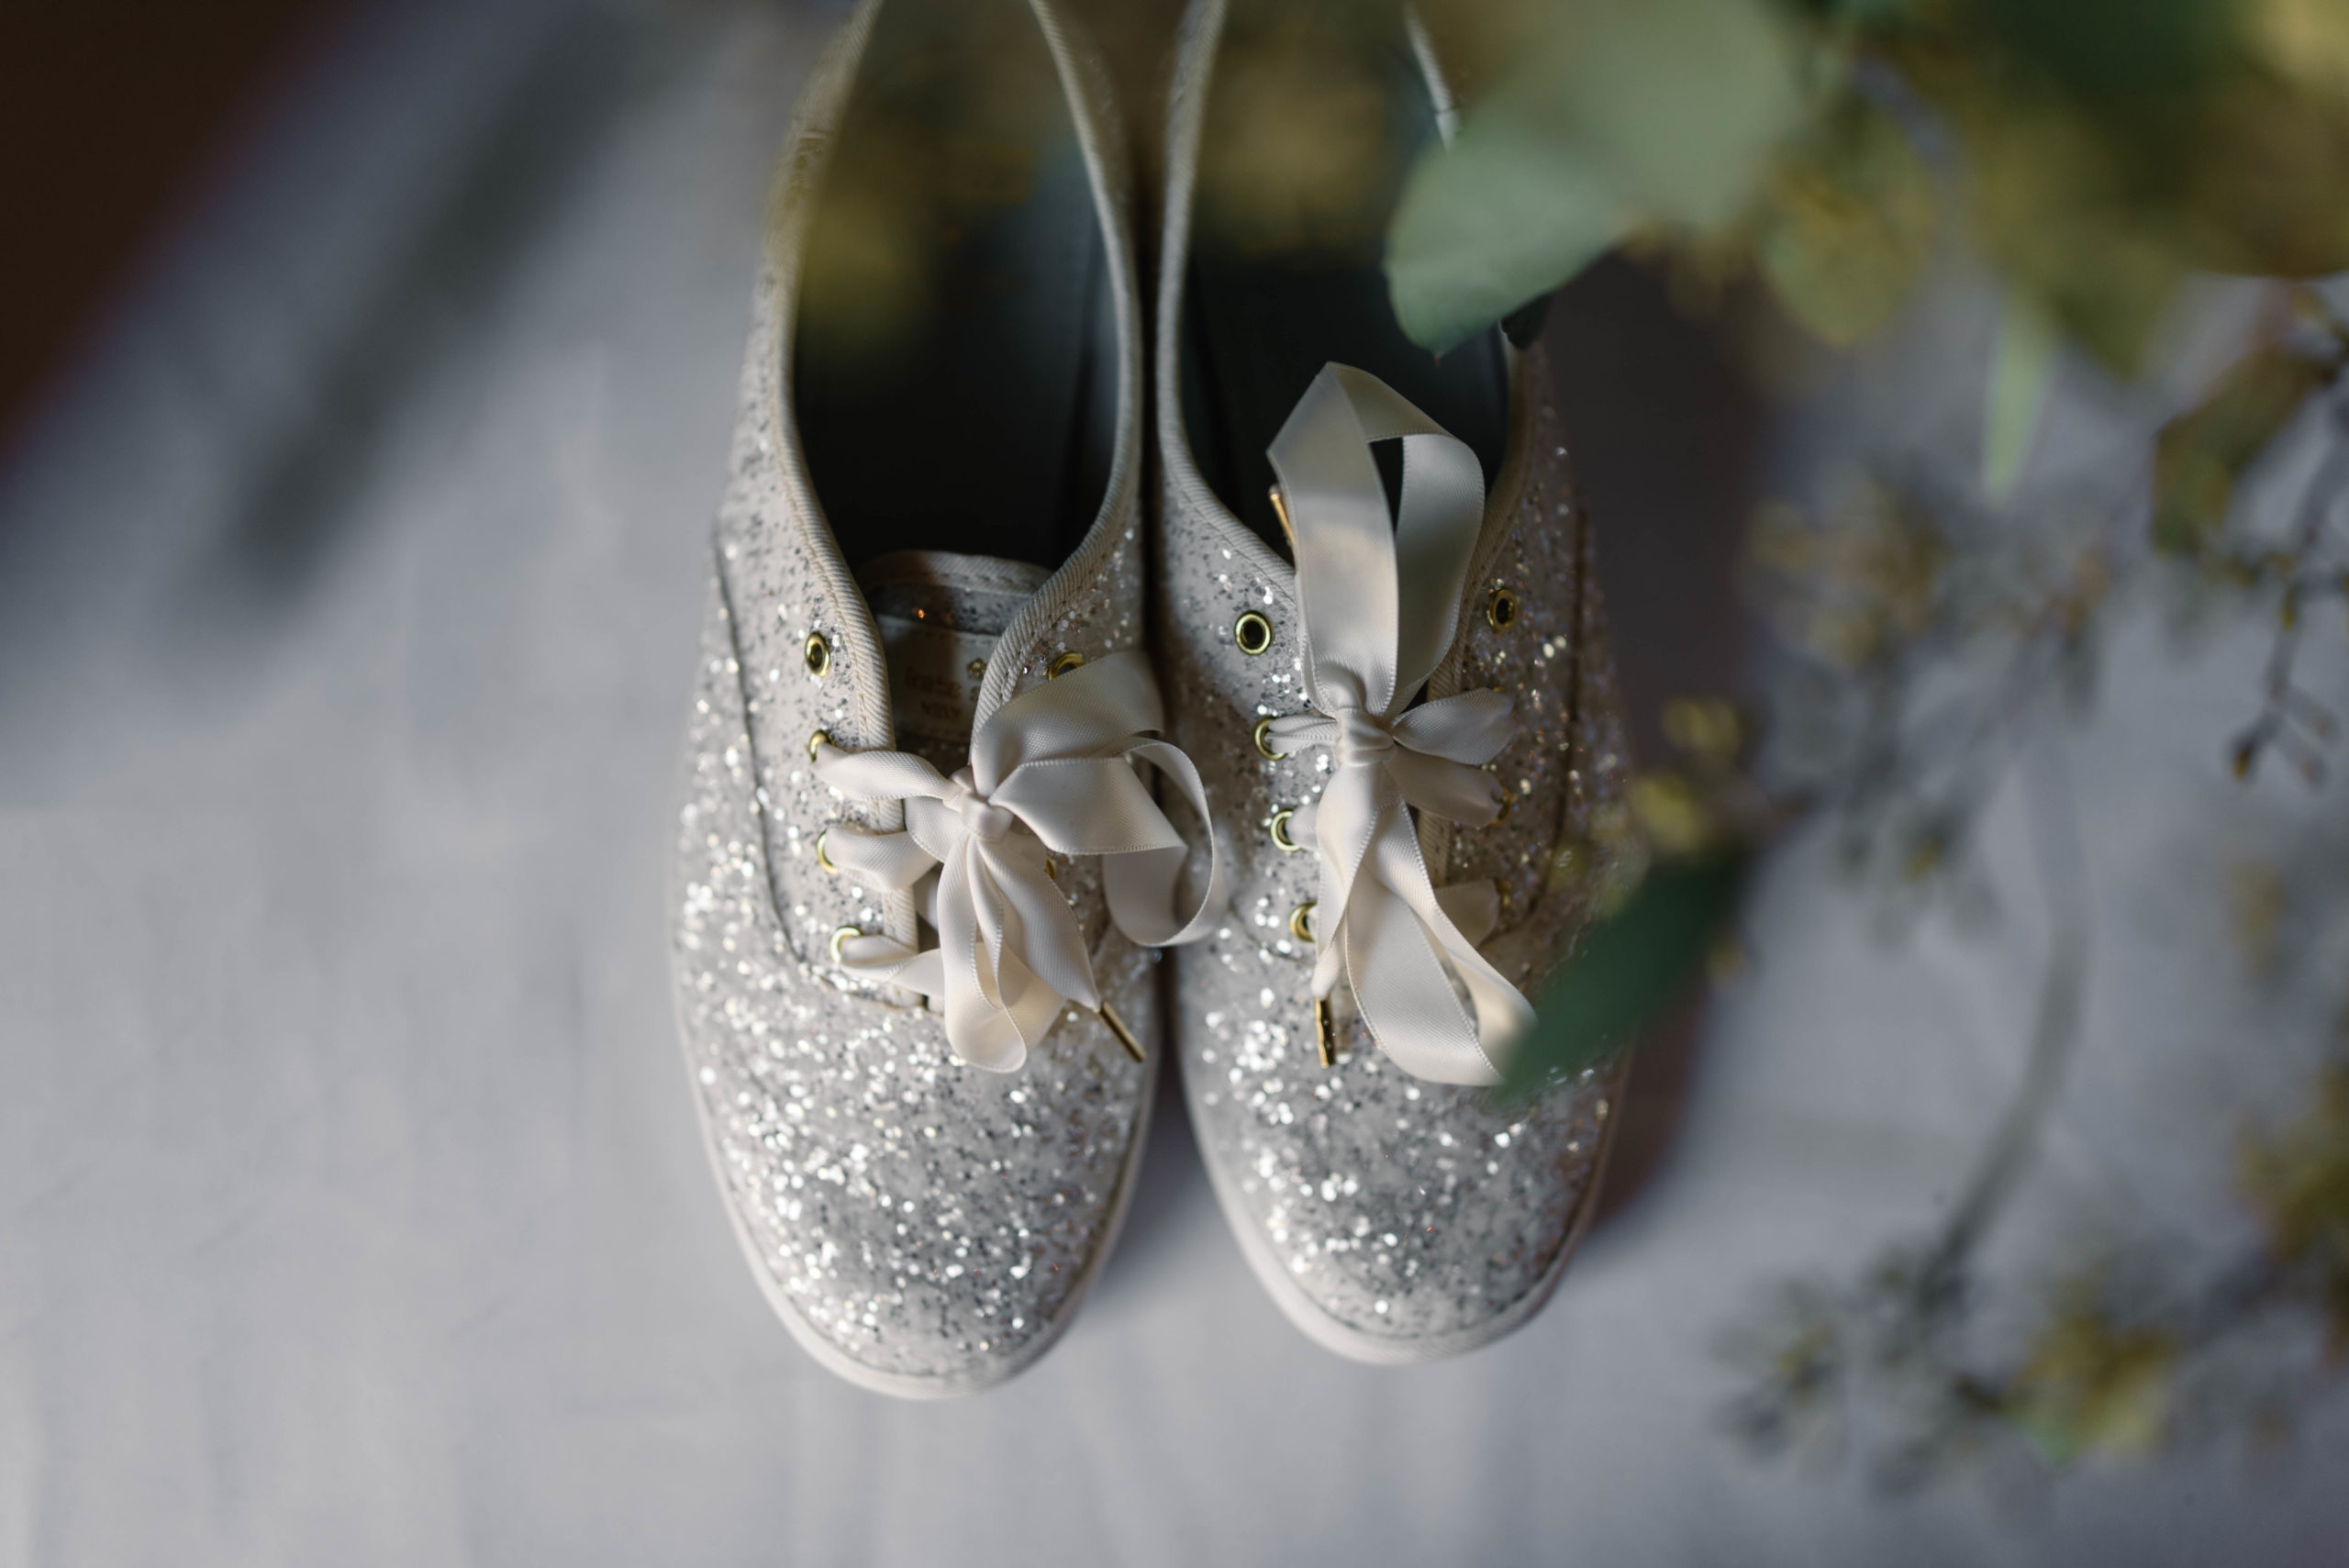 sparkle Kate Spade Keds wedding shoes with white rose weddin bouquet schafer century barn wedding venue